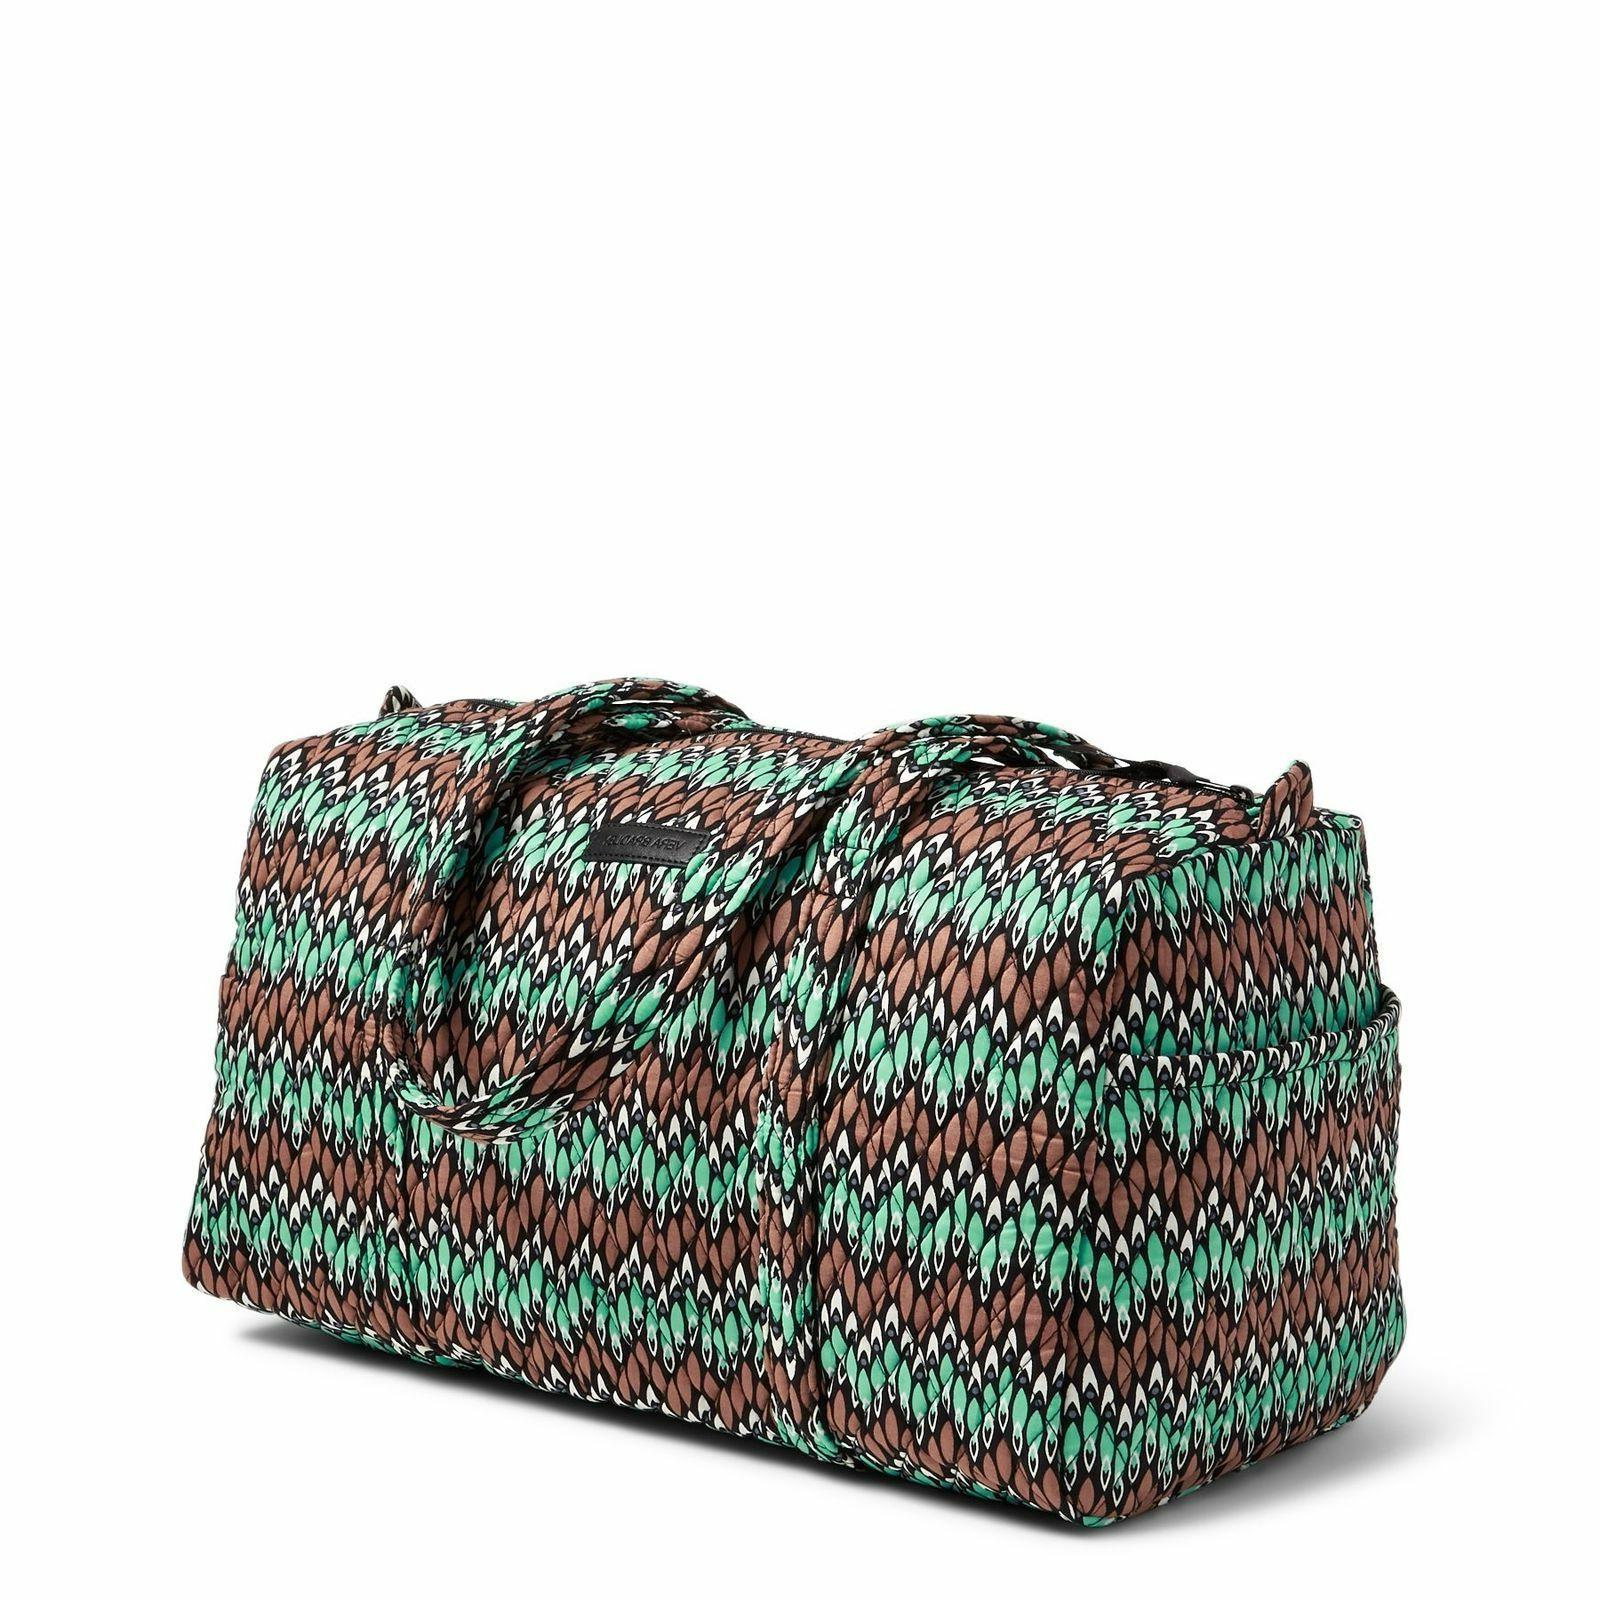 Vera Bradley Large Duffel Travel Bag in Sierra Stream Quilte